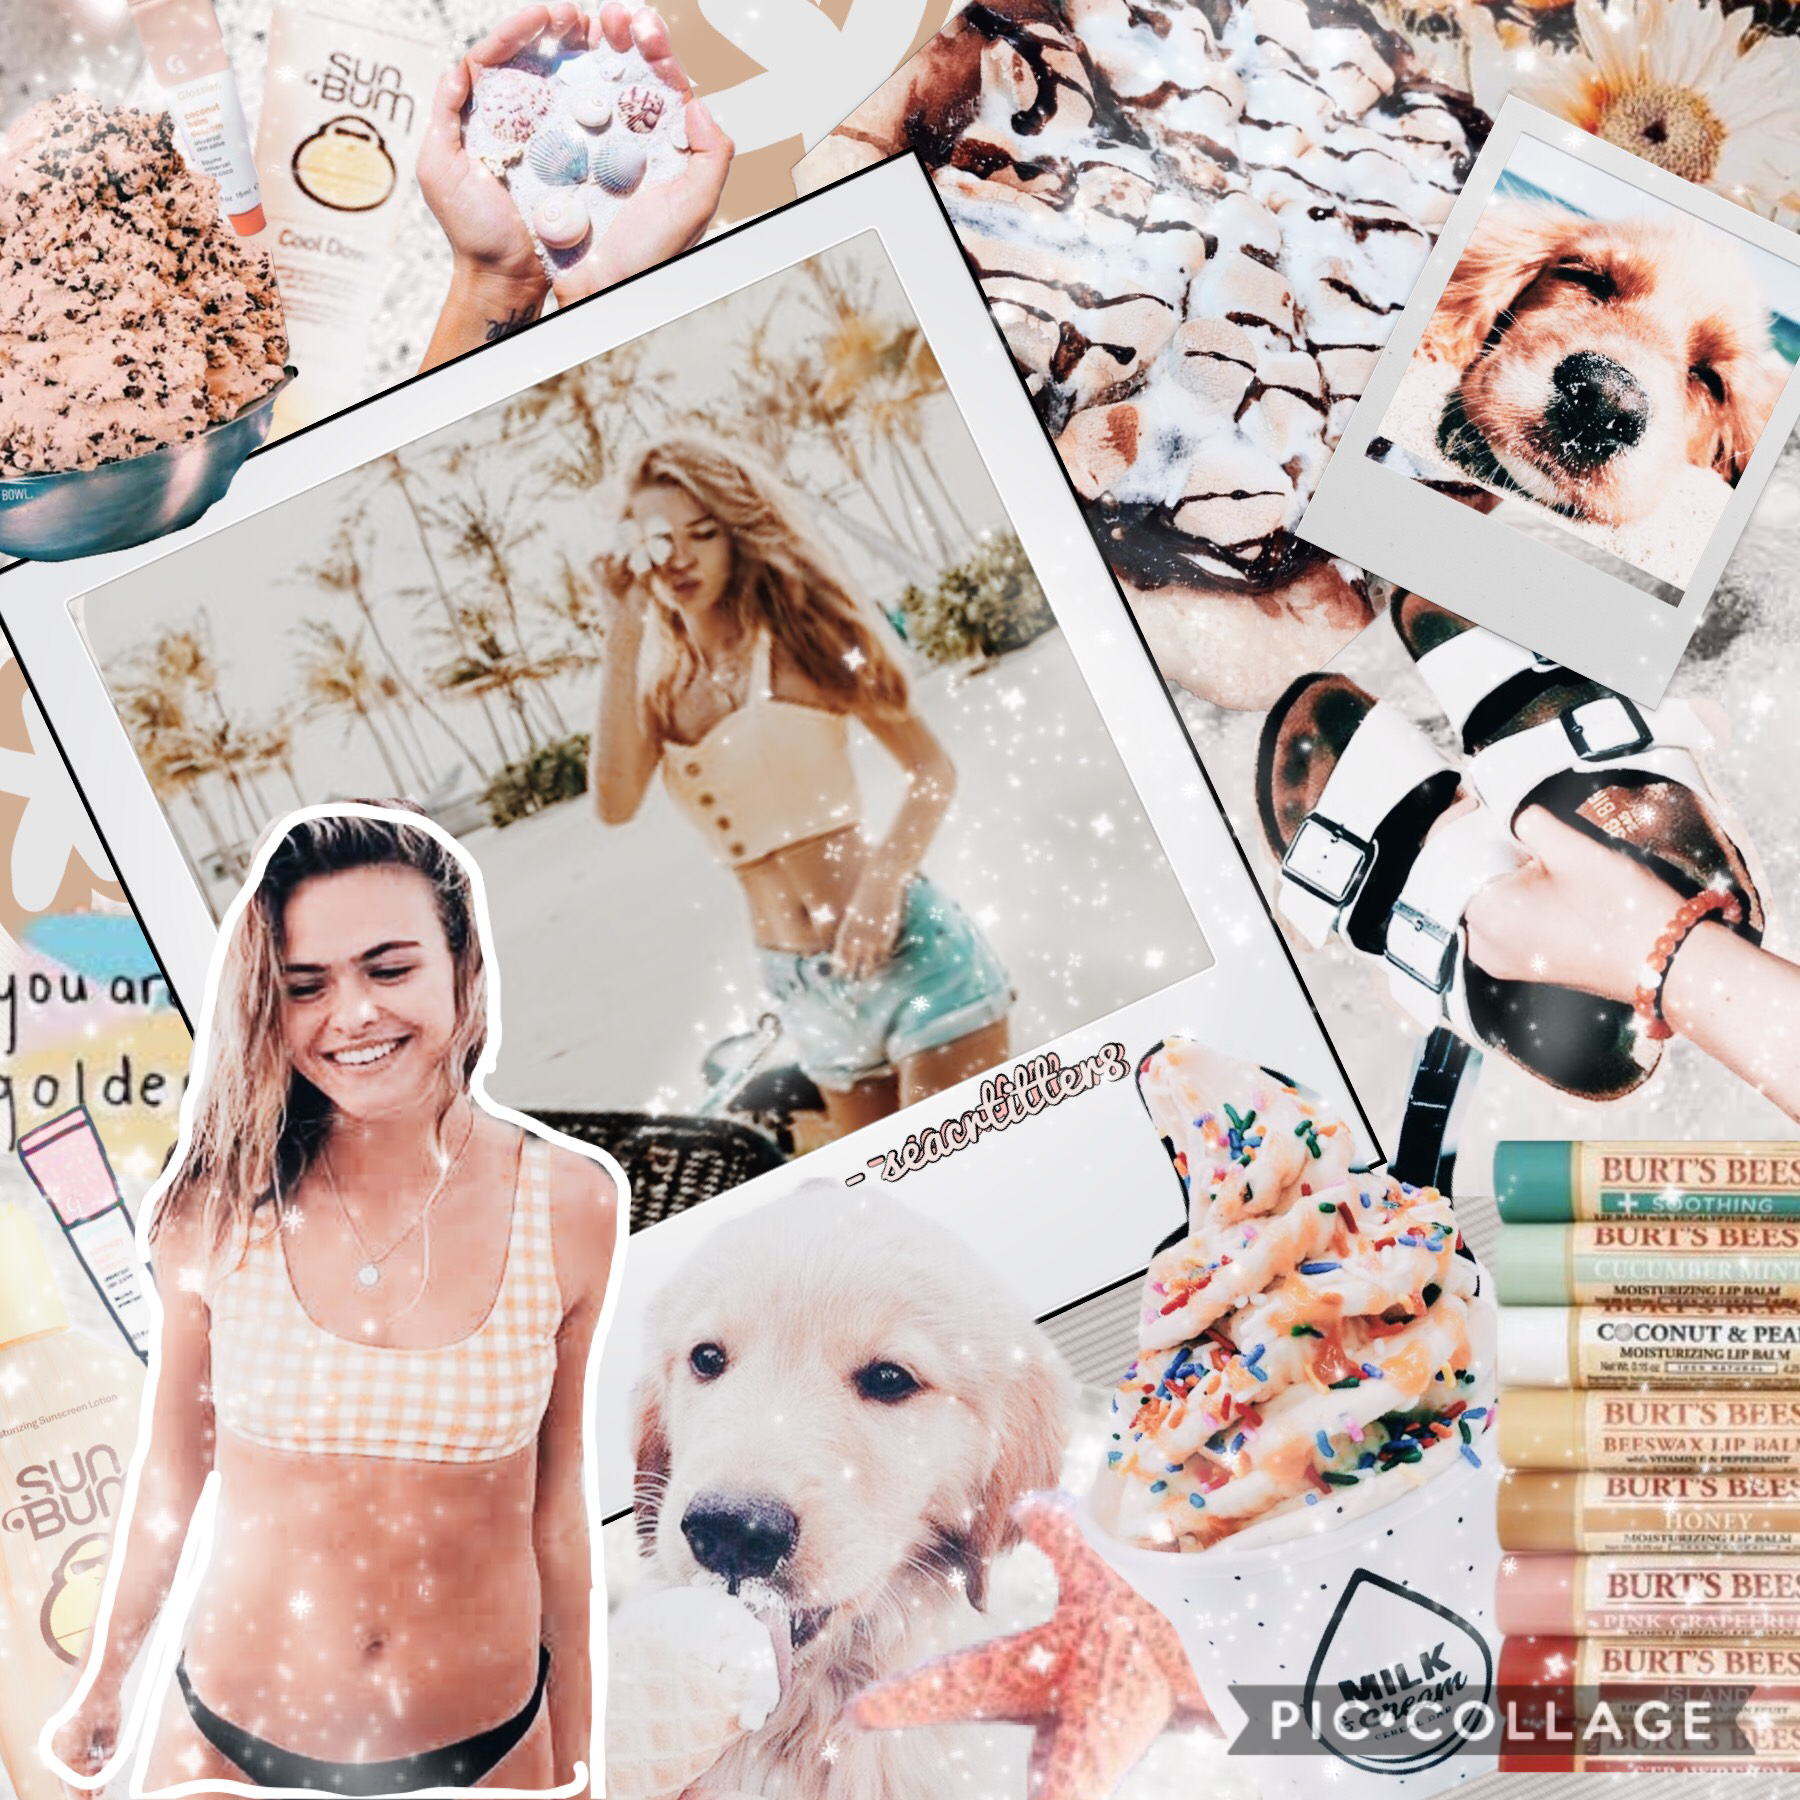 Well not my best work, but hope you guys like this new style I'm obsessed with!! More of this theme coming soon.......😊💕